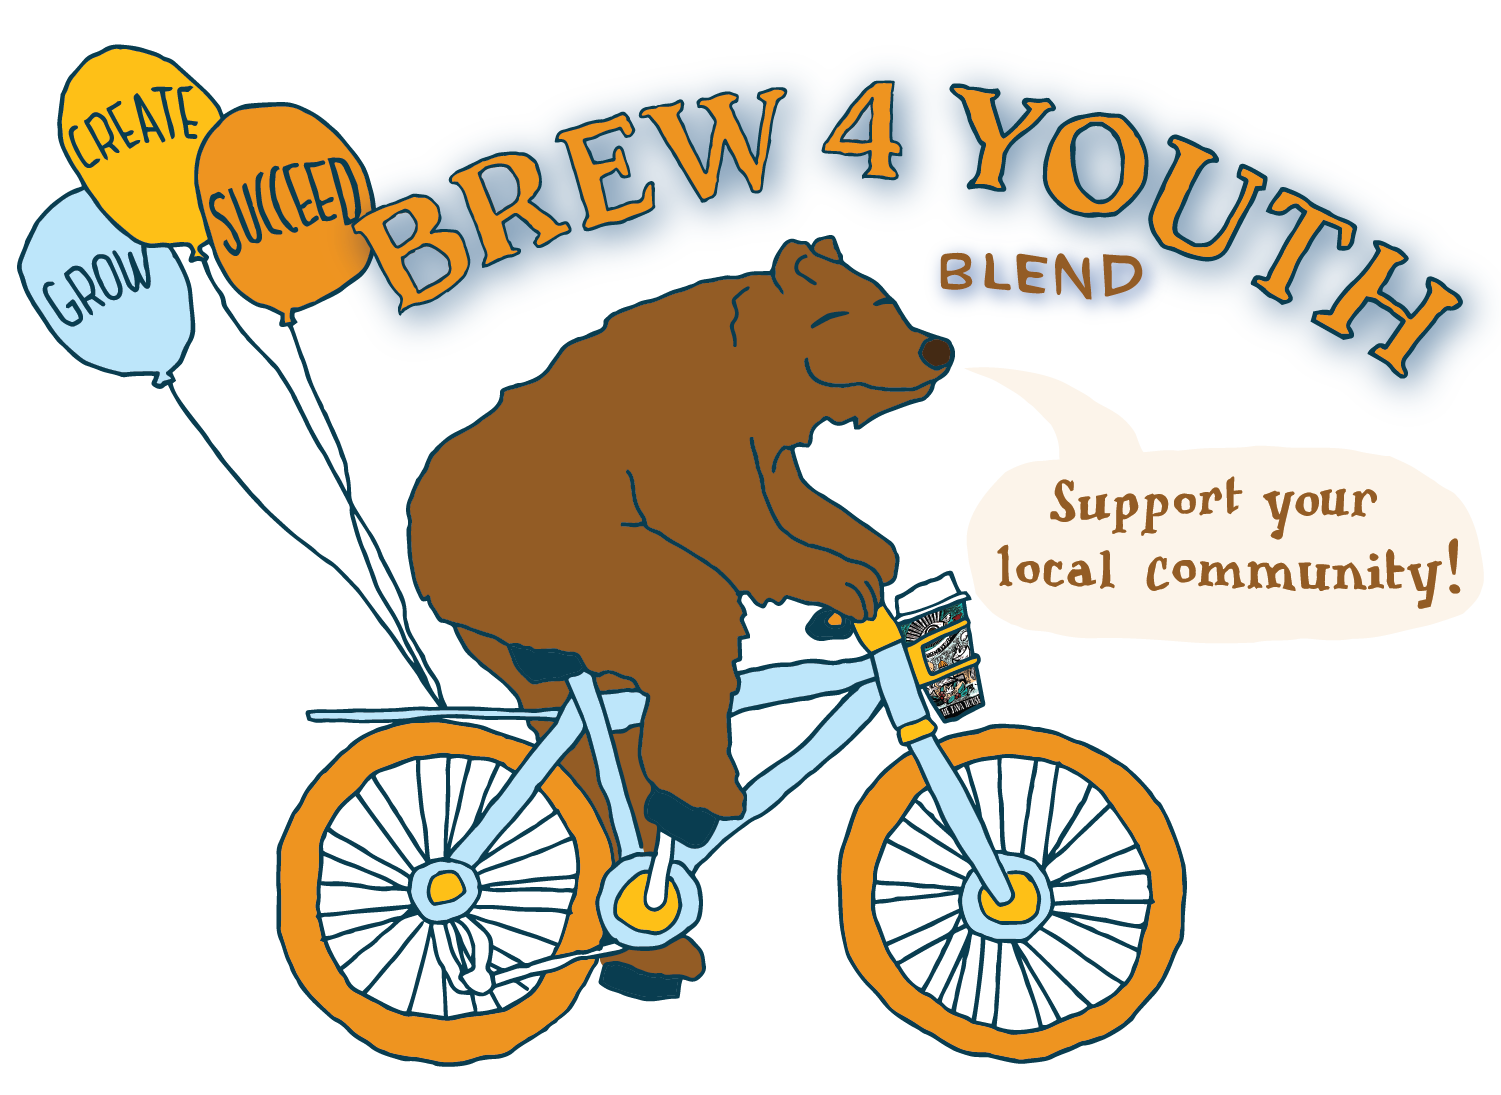 Brew 4 Youth Blend. Support Your Local Community!